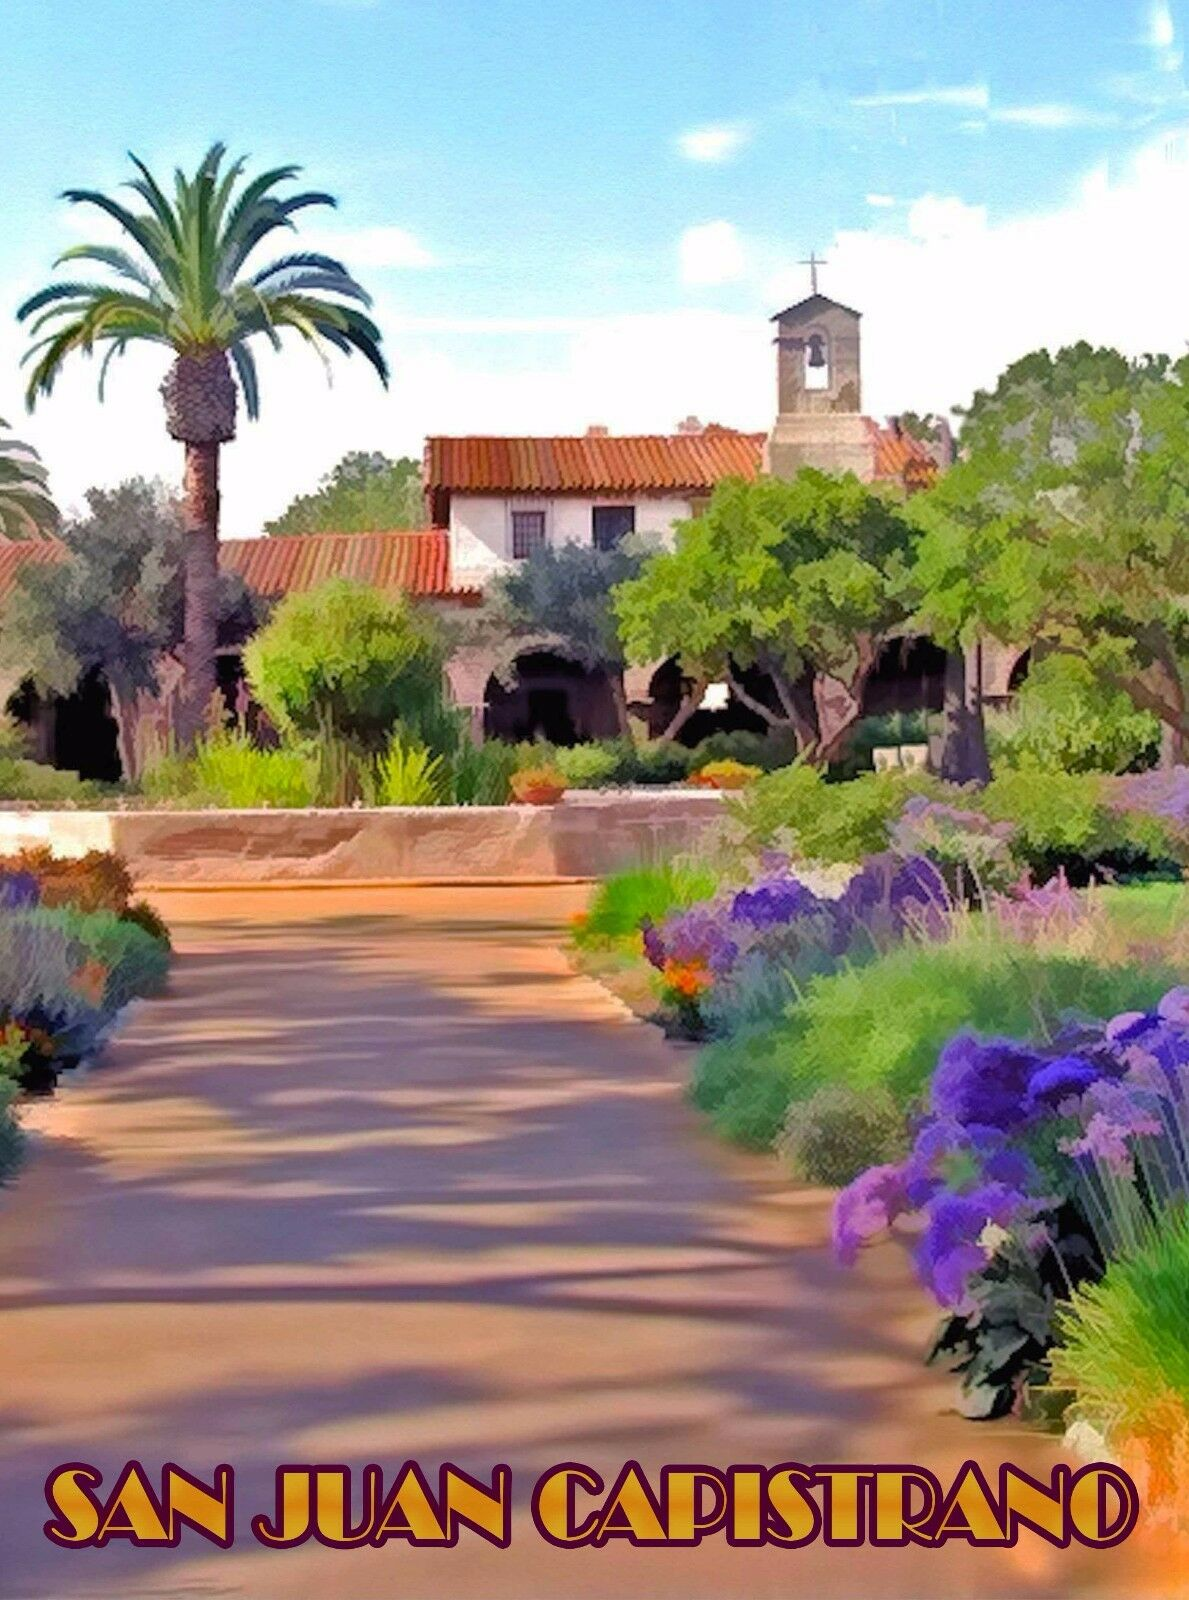 San Juan Capistrano (CA) United States  city photos gallery : San Juan Capistrano California United States Travel Advertisement Art ...